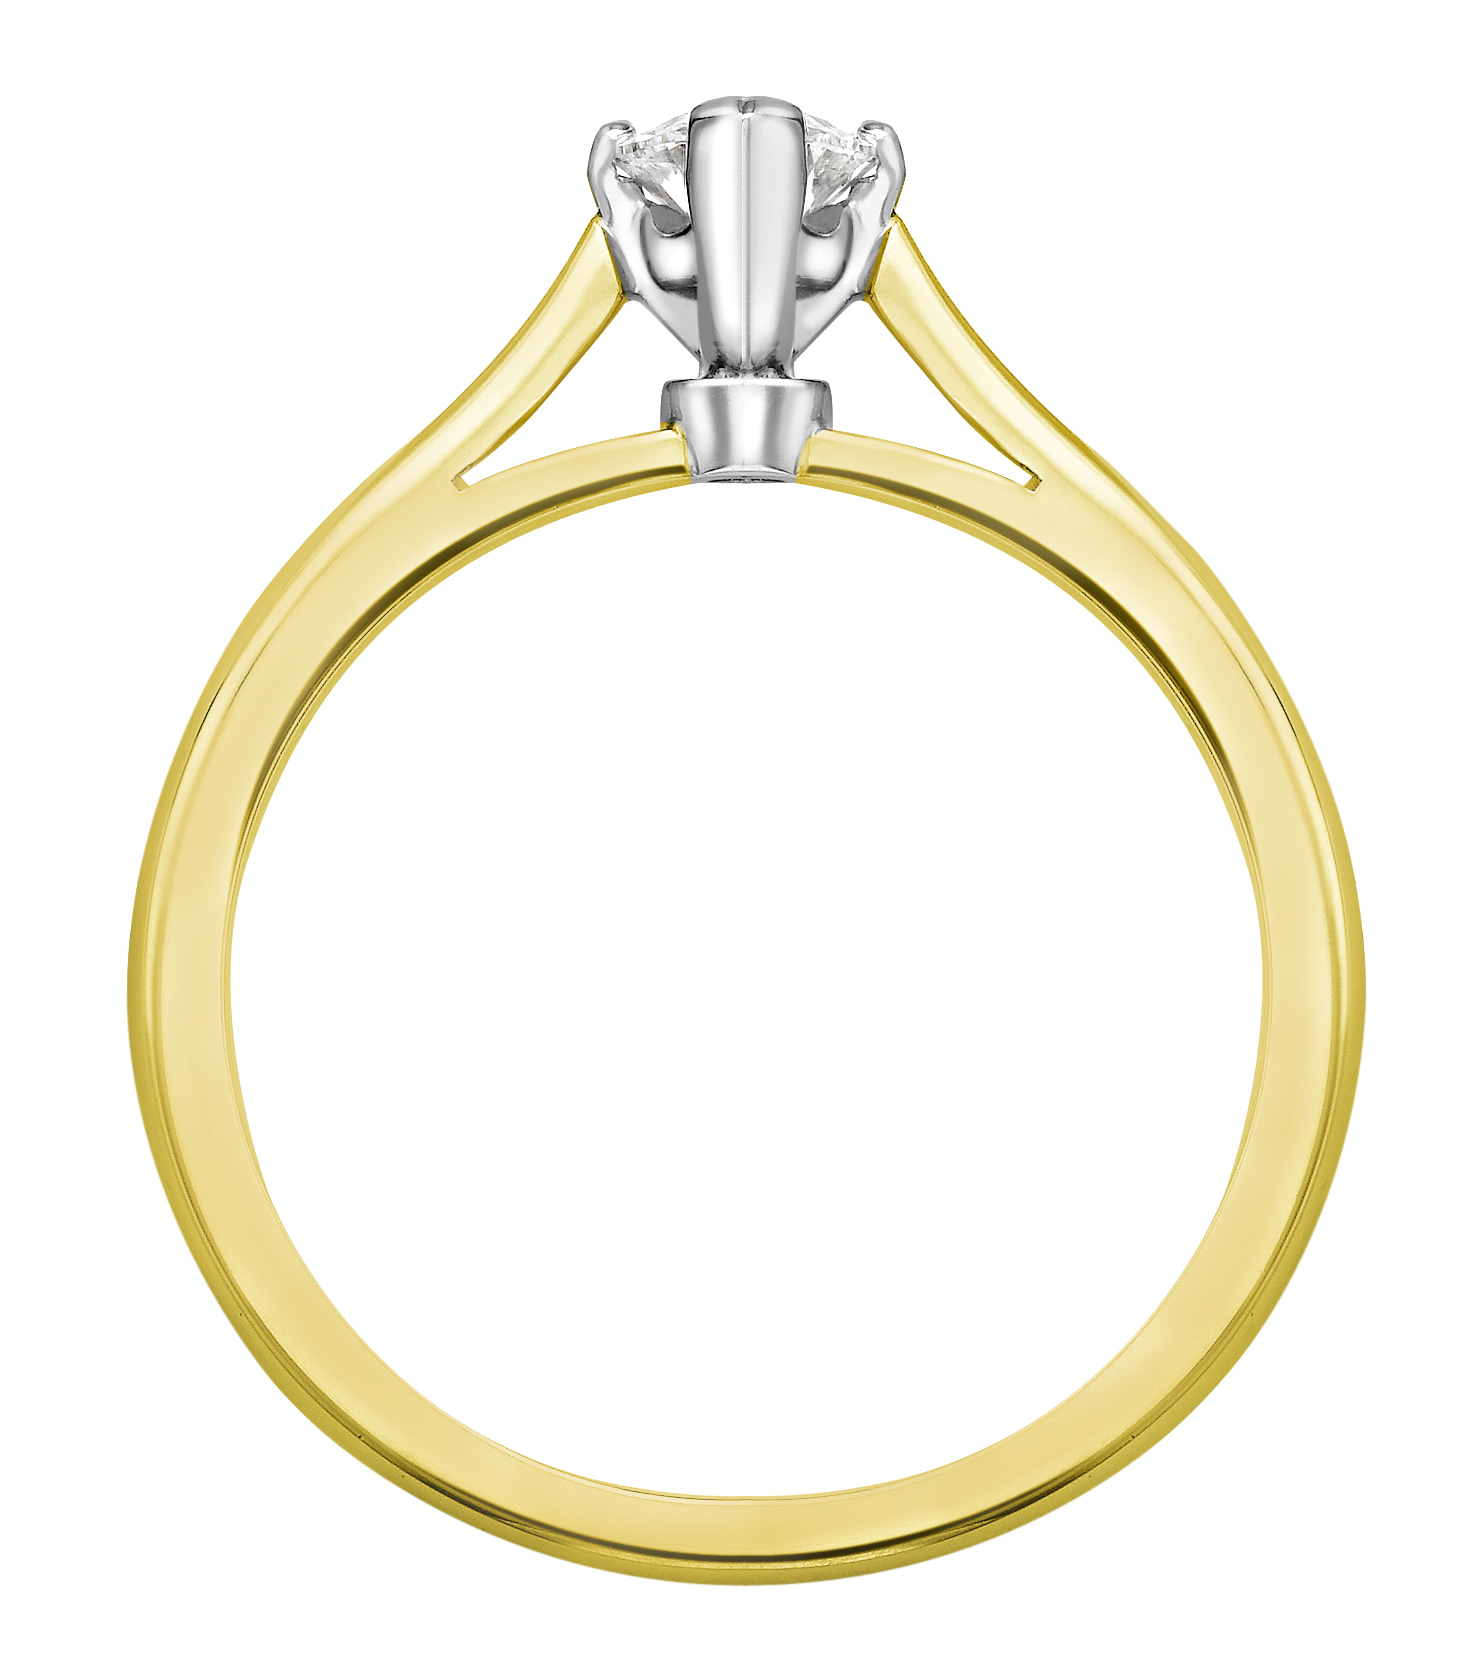 Marquise Cut Yellow Gold Diamond Engagement Ring GRC687YG Image 2